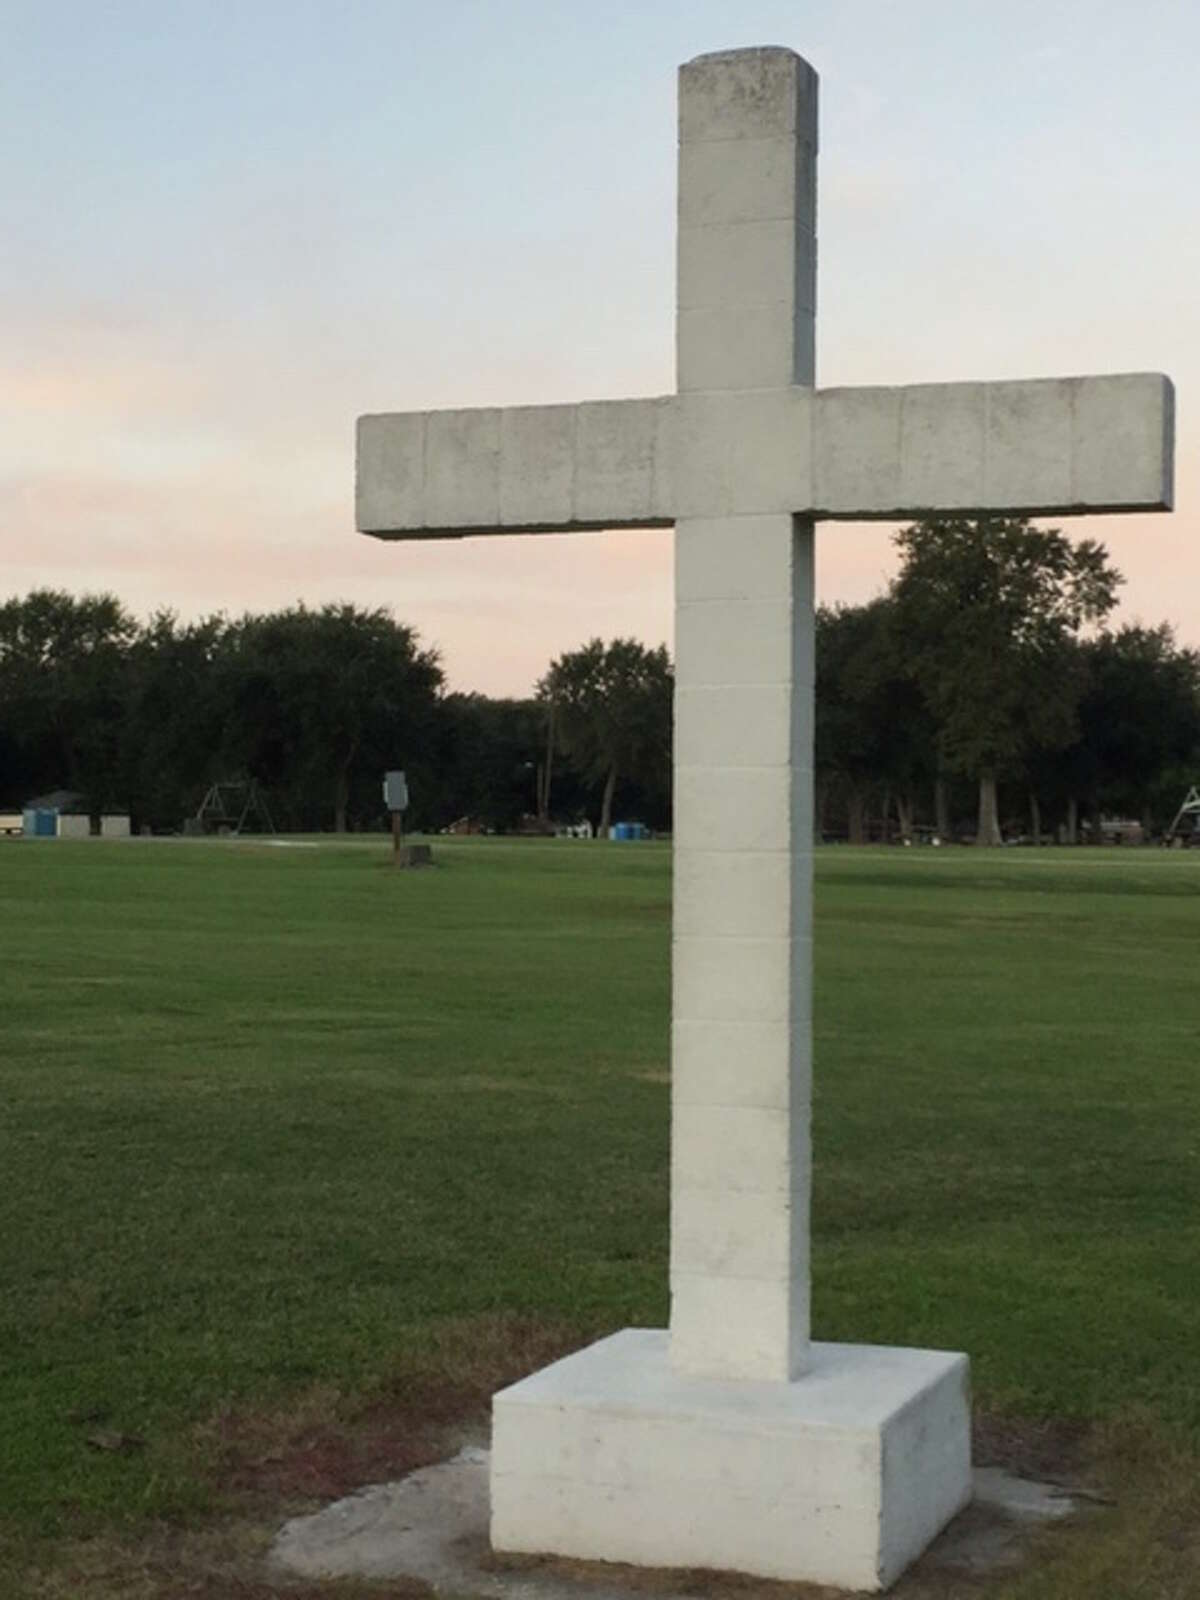 """A """"Latin"""" cross, so described by the Freedom From Religion Foundation, is a specific religious symbol for Chrisitianity and its installation at a Port Neches city park violates the constitutional separation of church and state, a foundation attorney said. The group is asking Port Neches to move the cross to private property."""